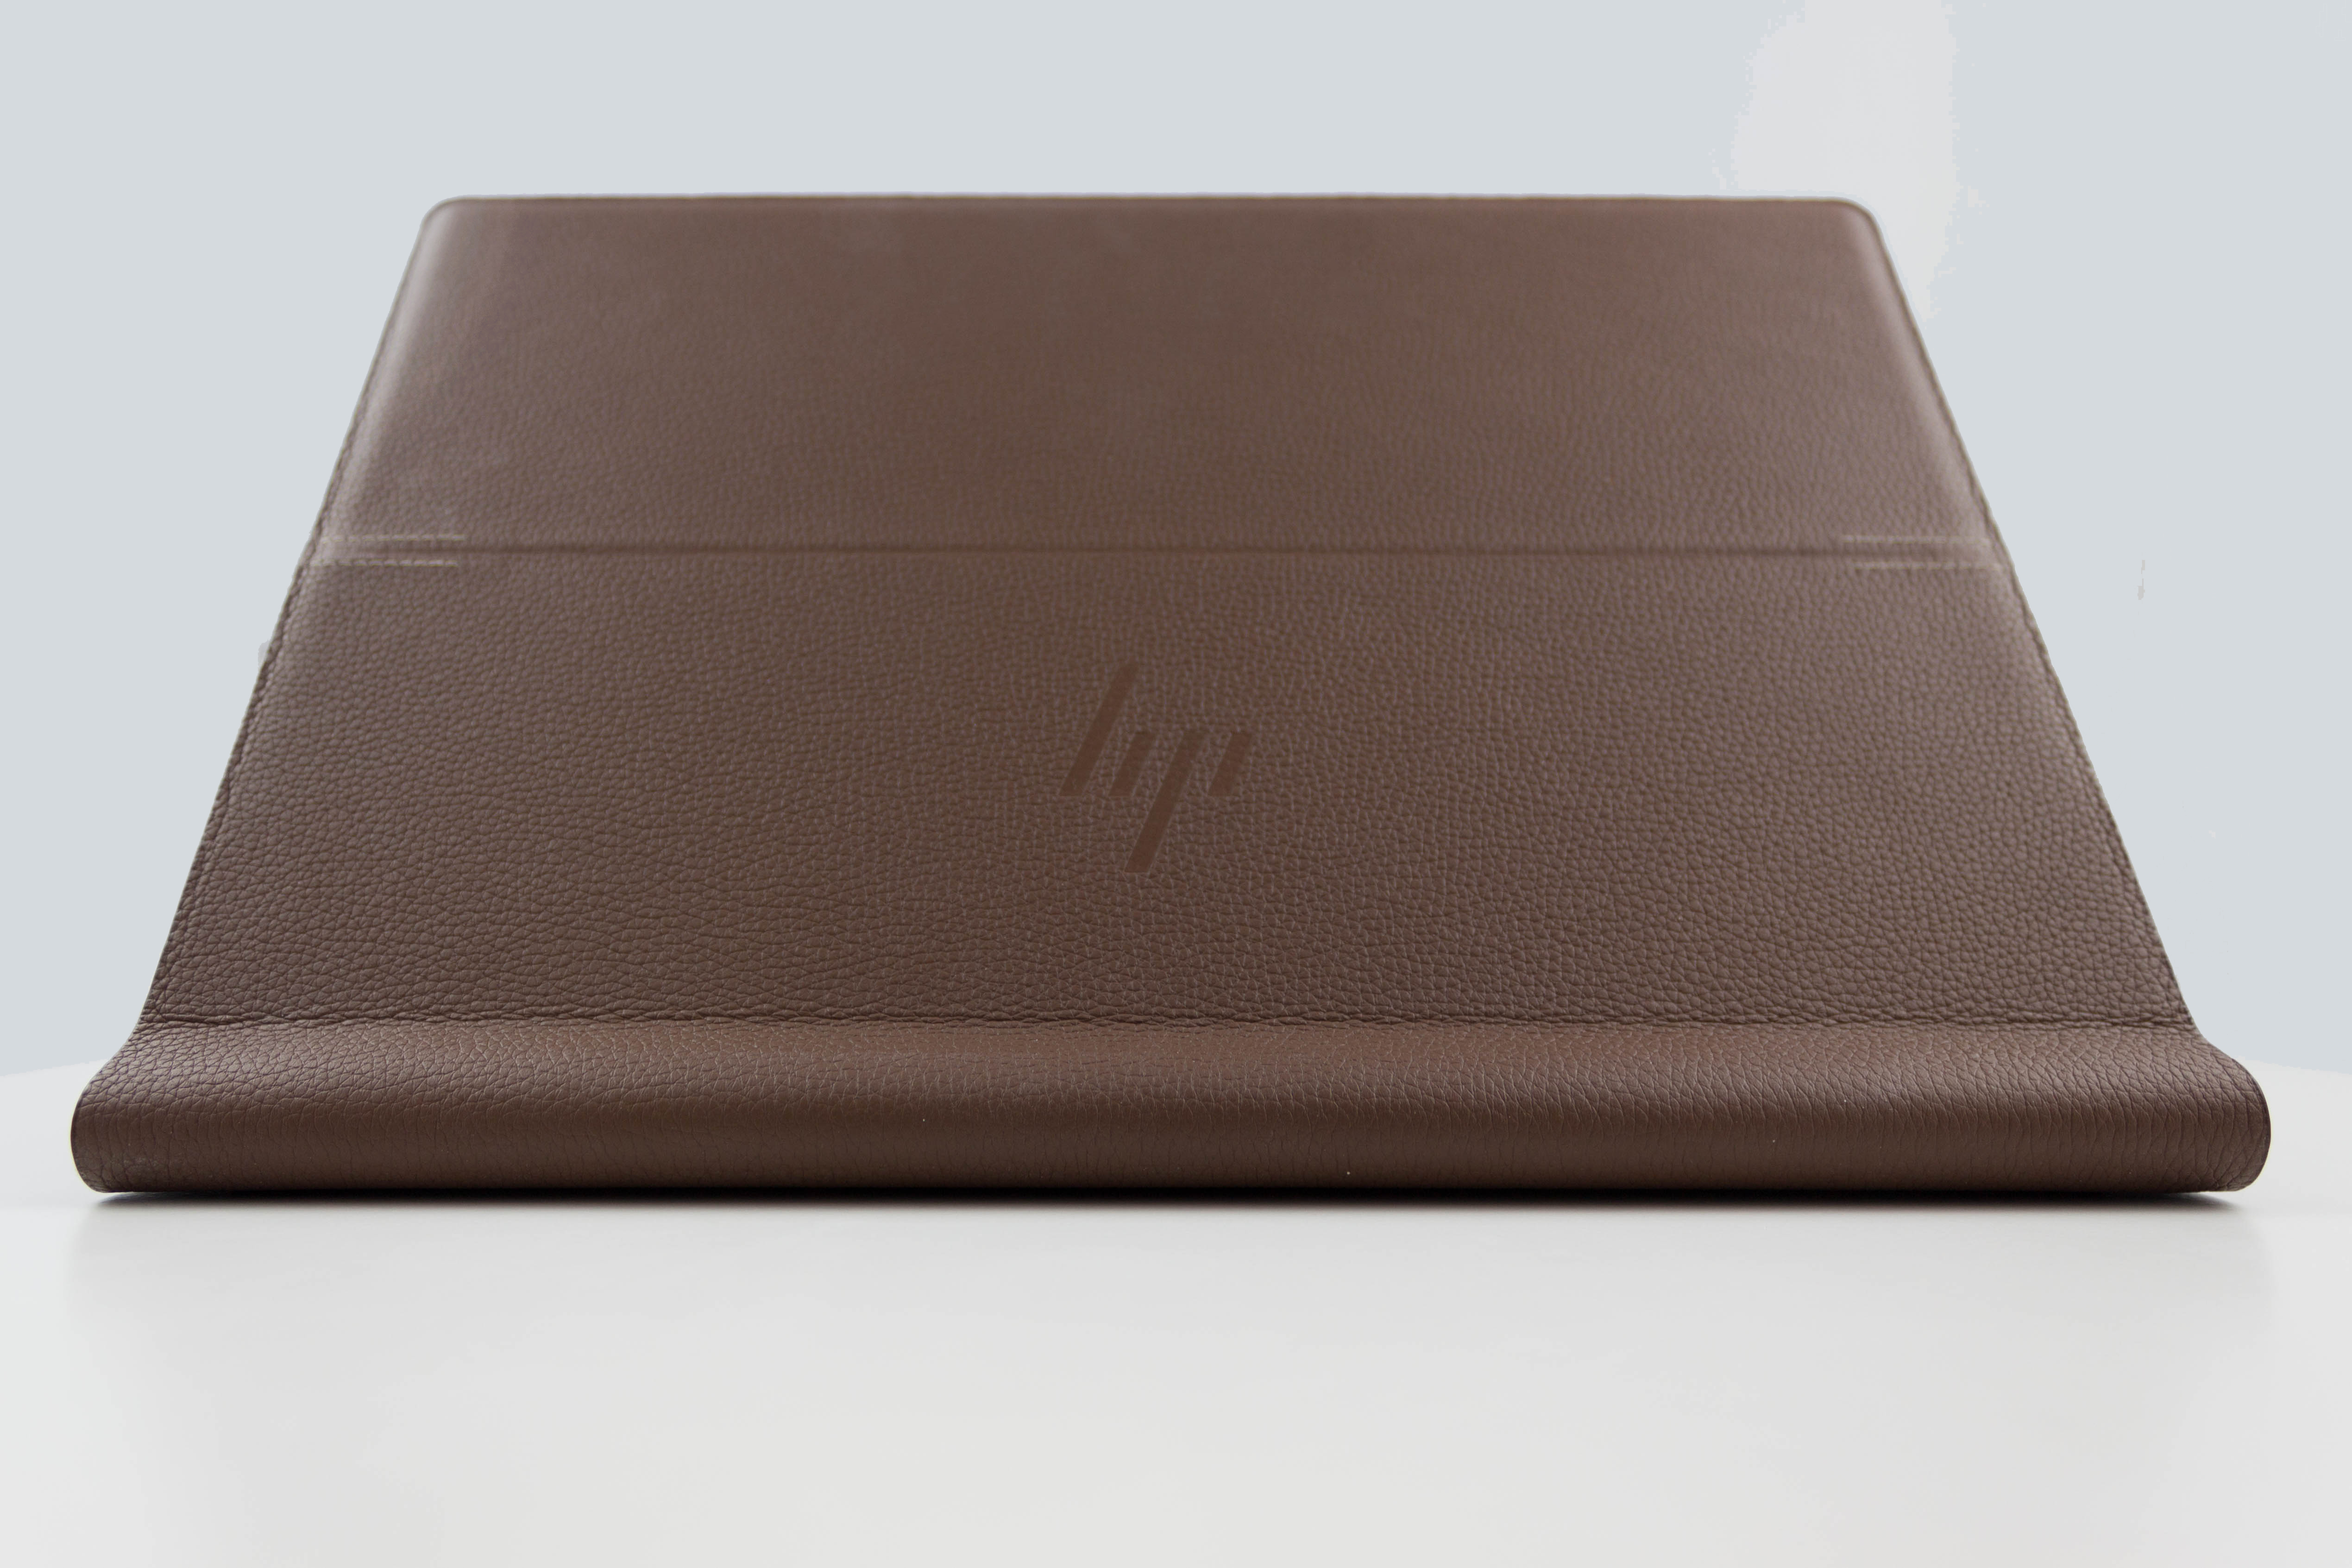 Design - The HP Spectre Folio Review: Luxurious Leather Laptop